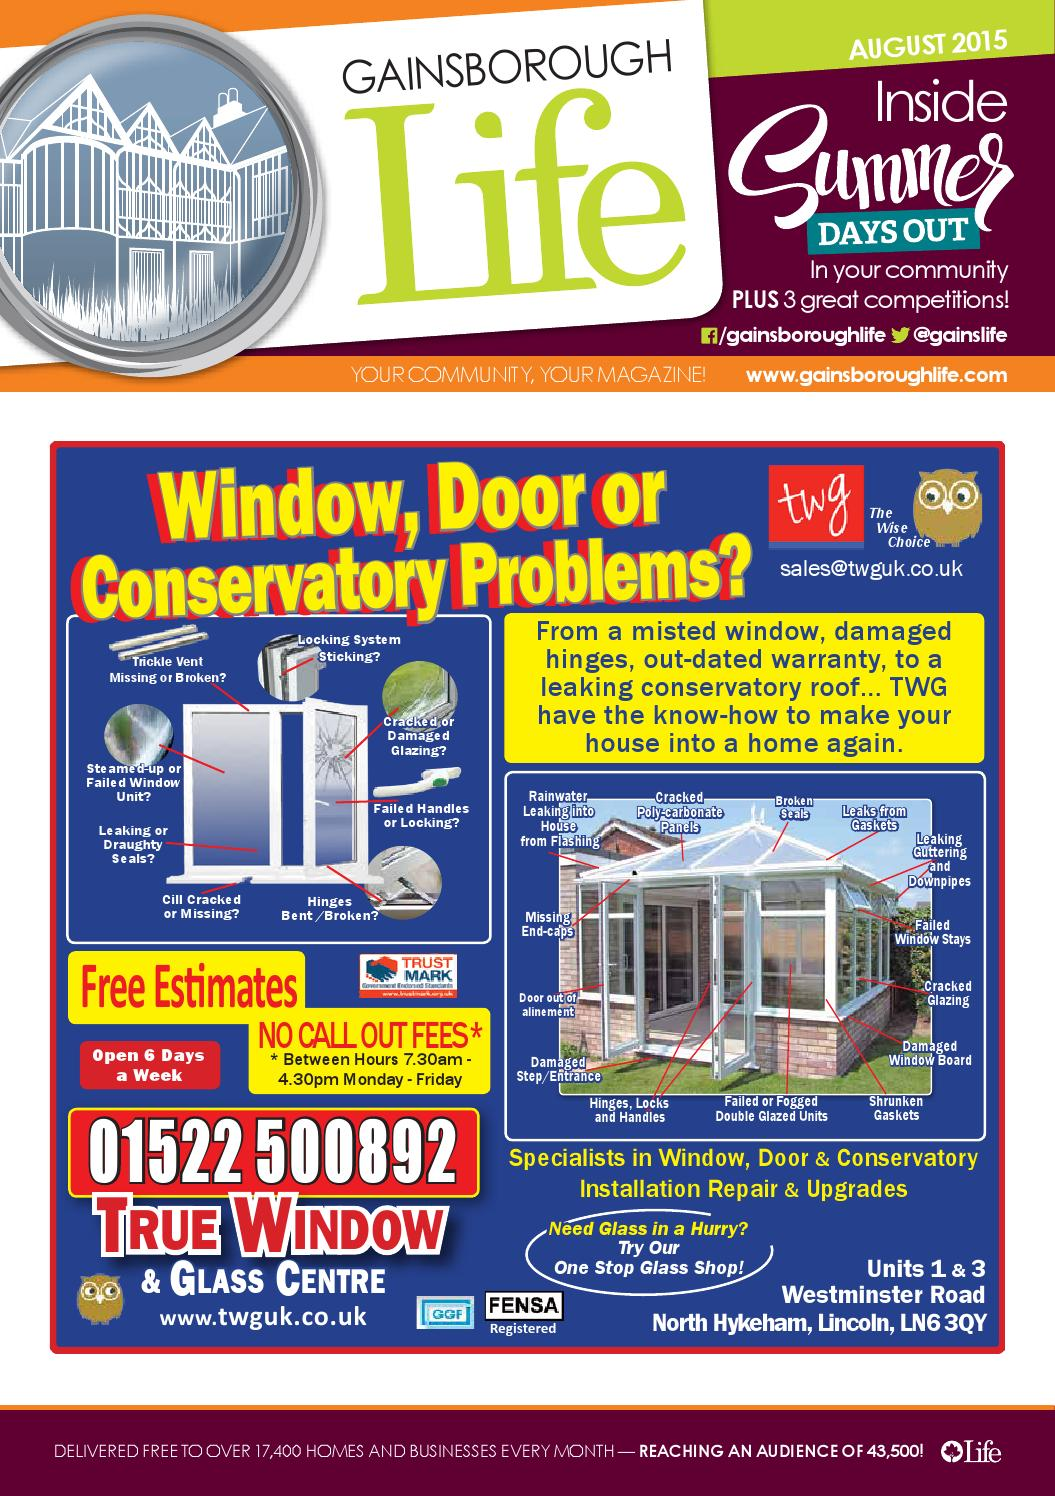 Gainsborough Life Magazine August 2015 By Publications Issuu Introduction To Electronic Circuit Design Solutionsrichard R S